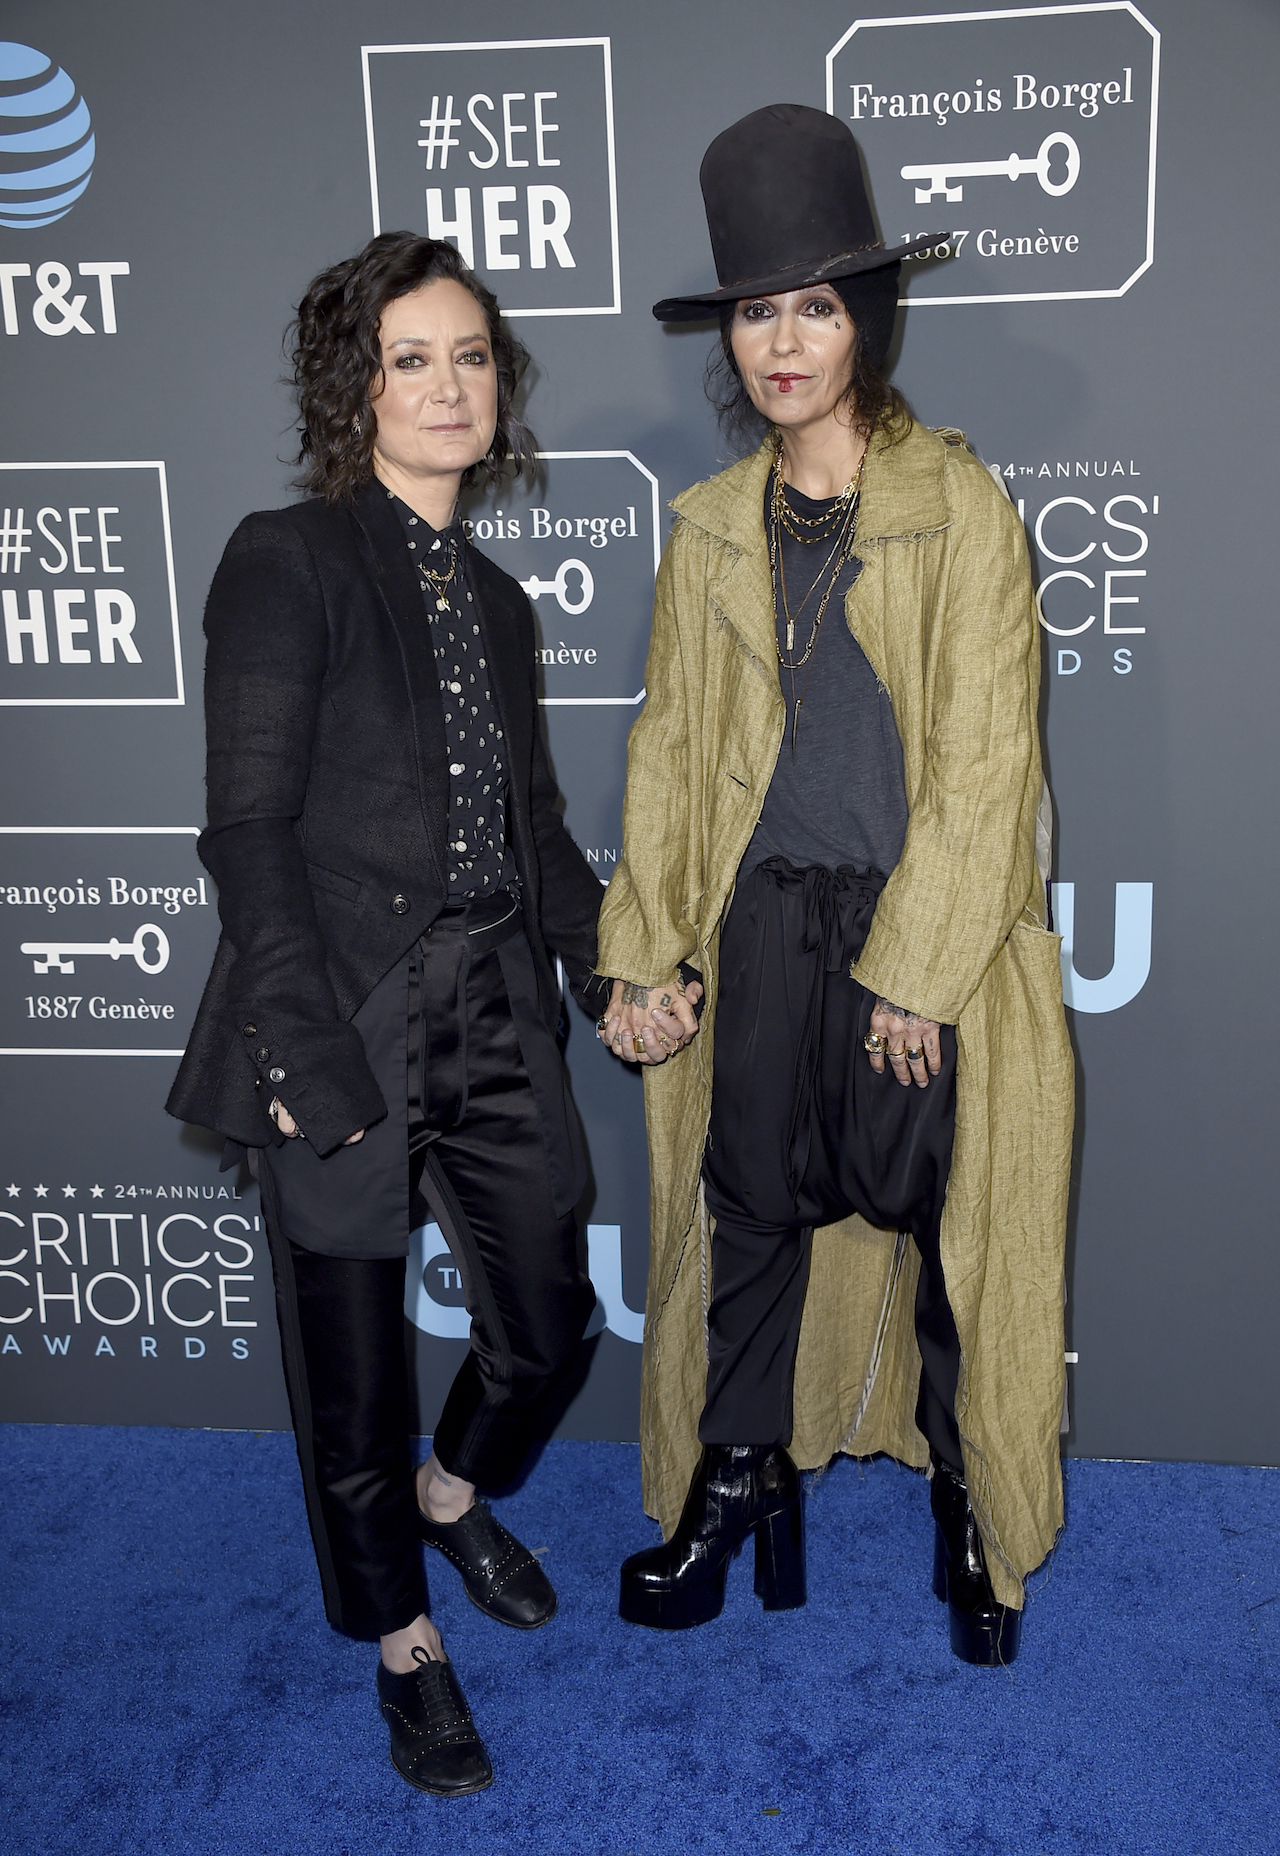 <div class='meta'><div class='origin-logo' data-origin='AP'></div><span class='caption-text' data-credit='Jordan Strauss/Invision/AP'>Sara Gilbert, left, and Linda Perry arrive at the 24th annual Critics' Choice Awards on Sunday, Jan. 13, 2019, at the Barker Hangar in Santa Monica, Calif.</span></div>